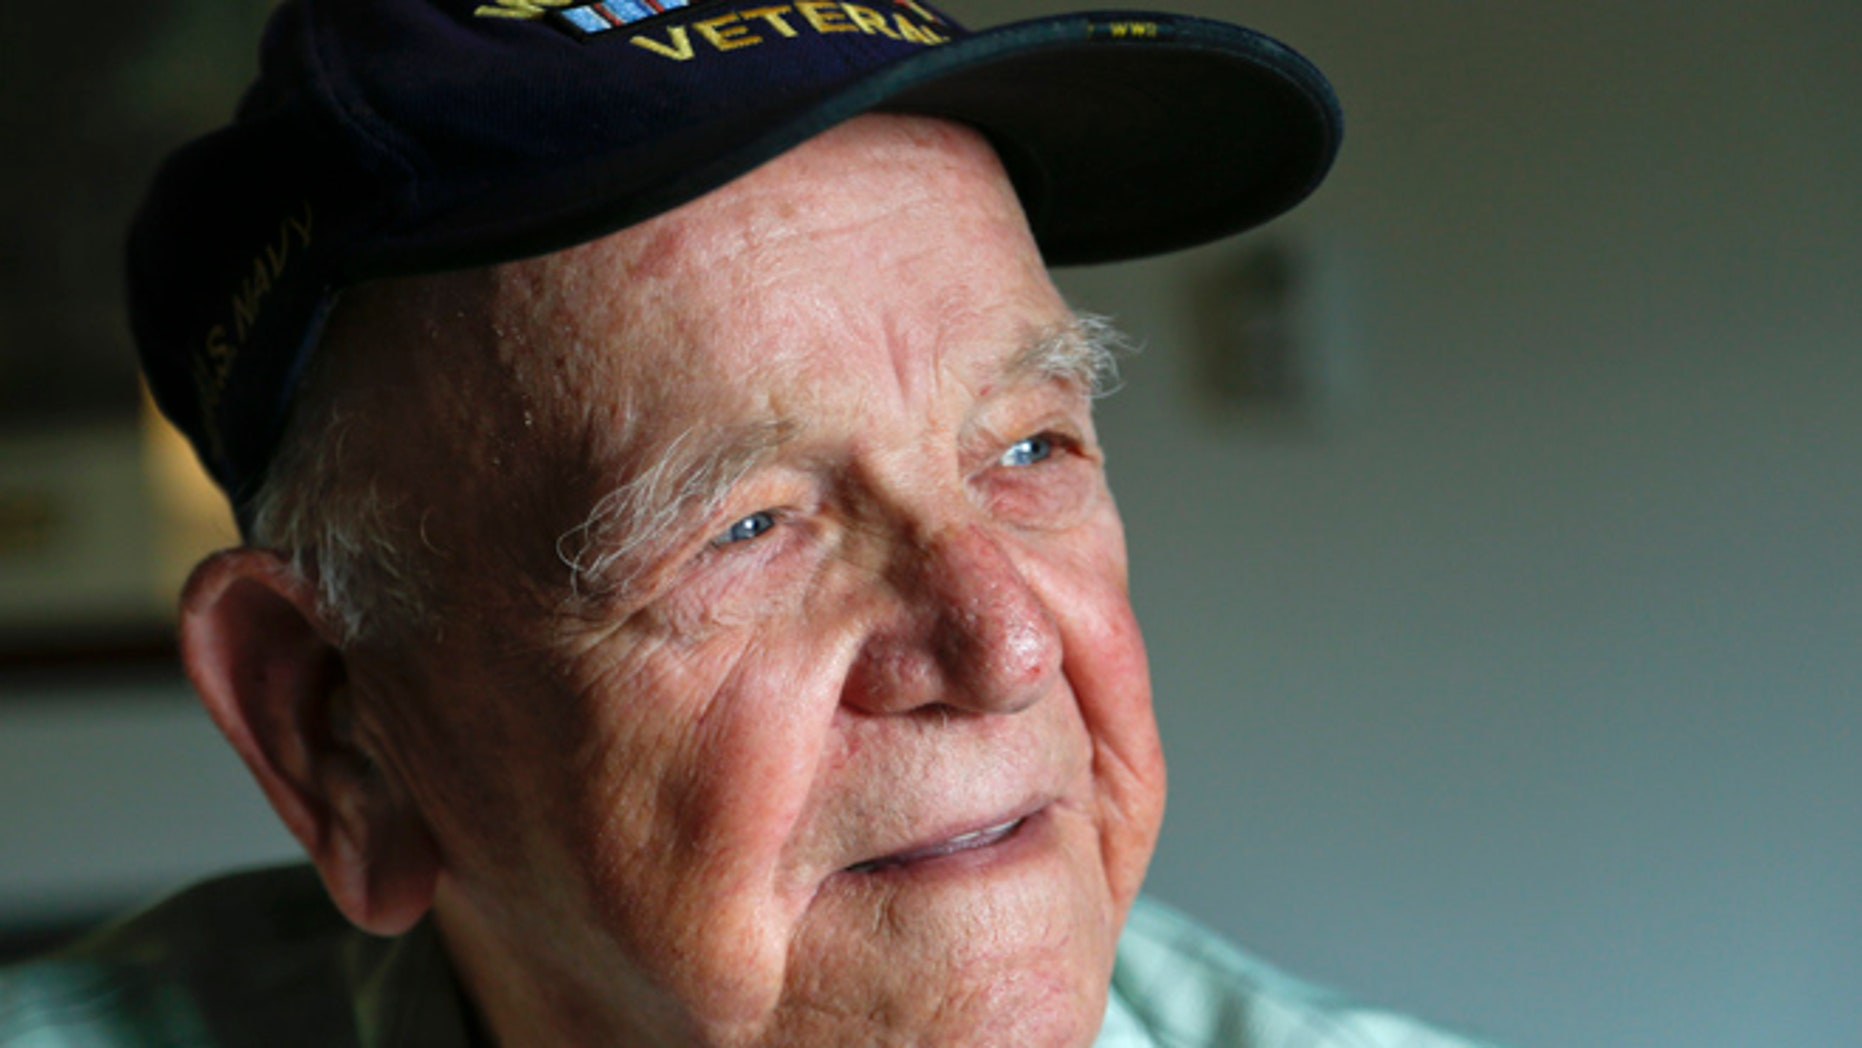 World War II veteran Stephen Dennis enlisted in the Navy soon after the Japanese attacked Pearl Harbor.